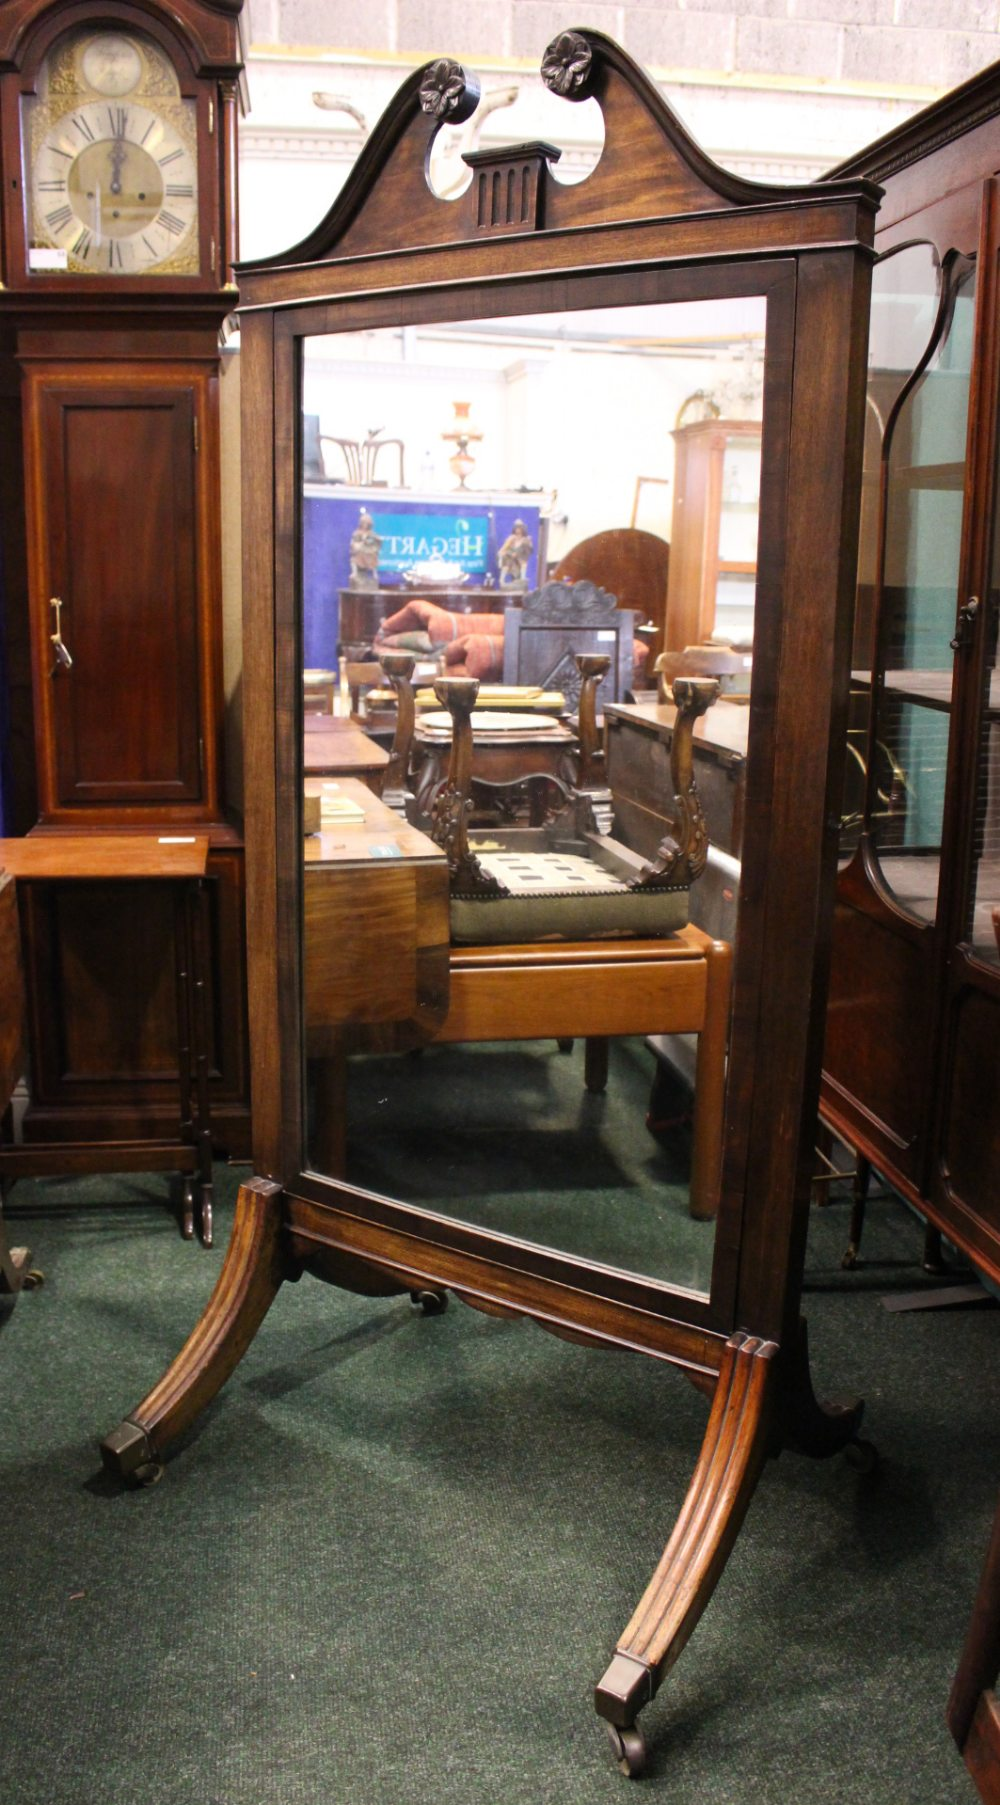 Lot 54 - A LARGE CHEVAL MIRROR, with swan neck pediment